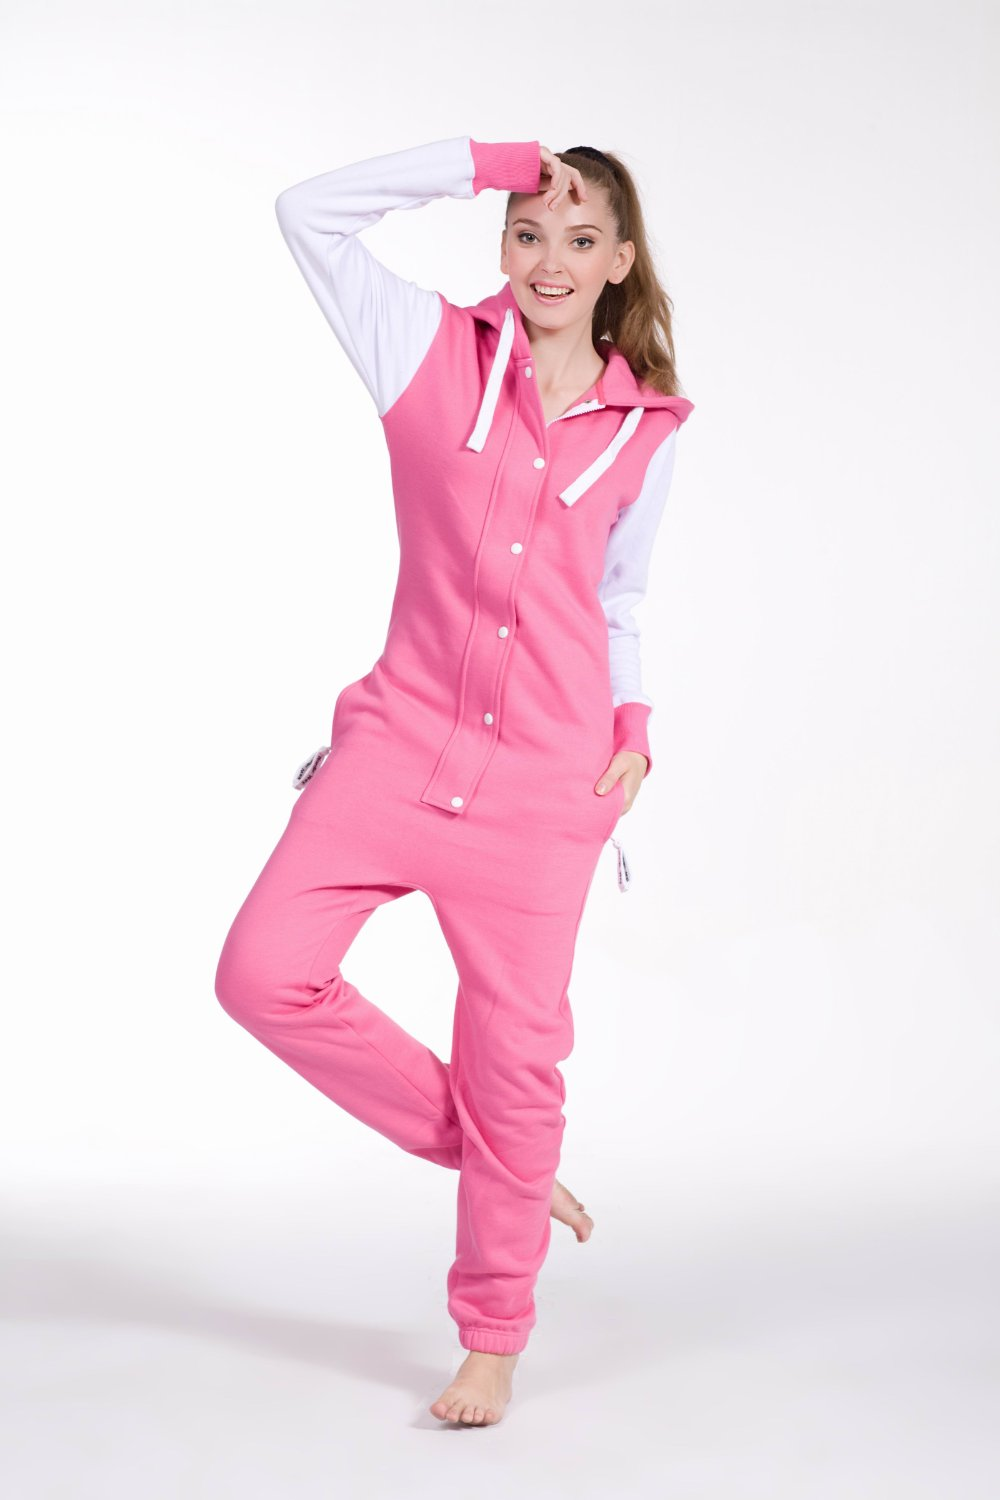 Family Matching Red Fleece Onesie Pjs Footed Pajamas for Alexander Del Rossa Womens Fleece Solid Colored Onesie, Hooded Footed Jumpsuit Pajamas. by Alexander Del Rossa. $ $ 34 99 Prime. FREE Shipping on eligible orders. Some sizes/colors are Prime eligible. 4 out of 5 stars